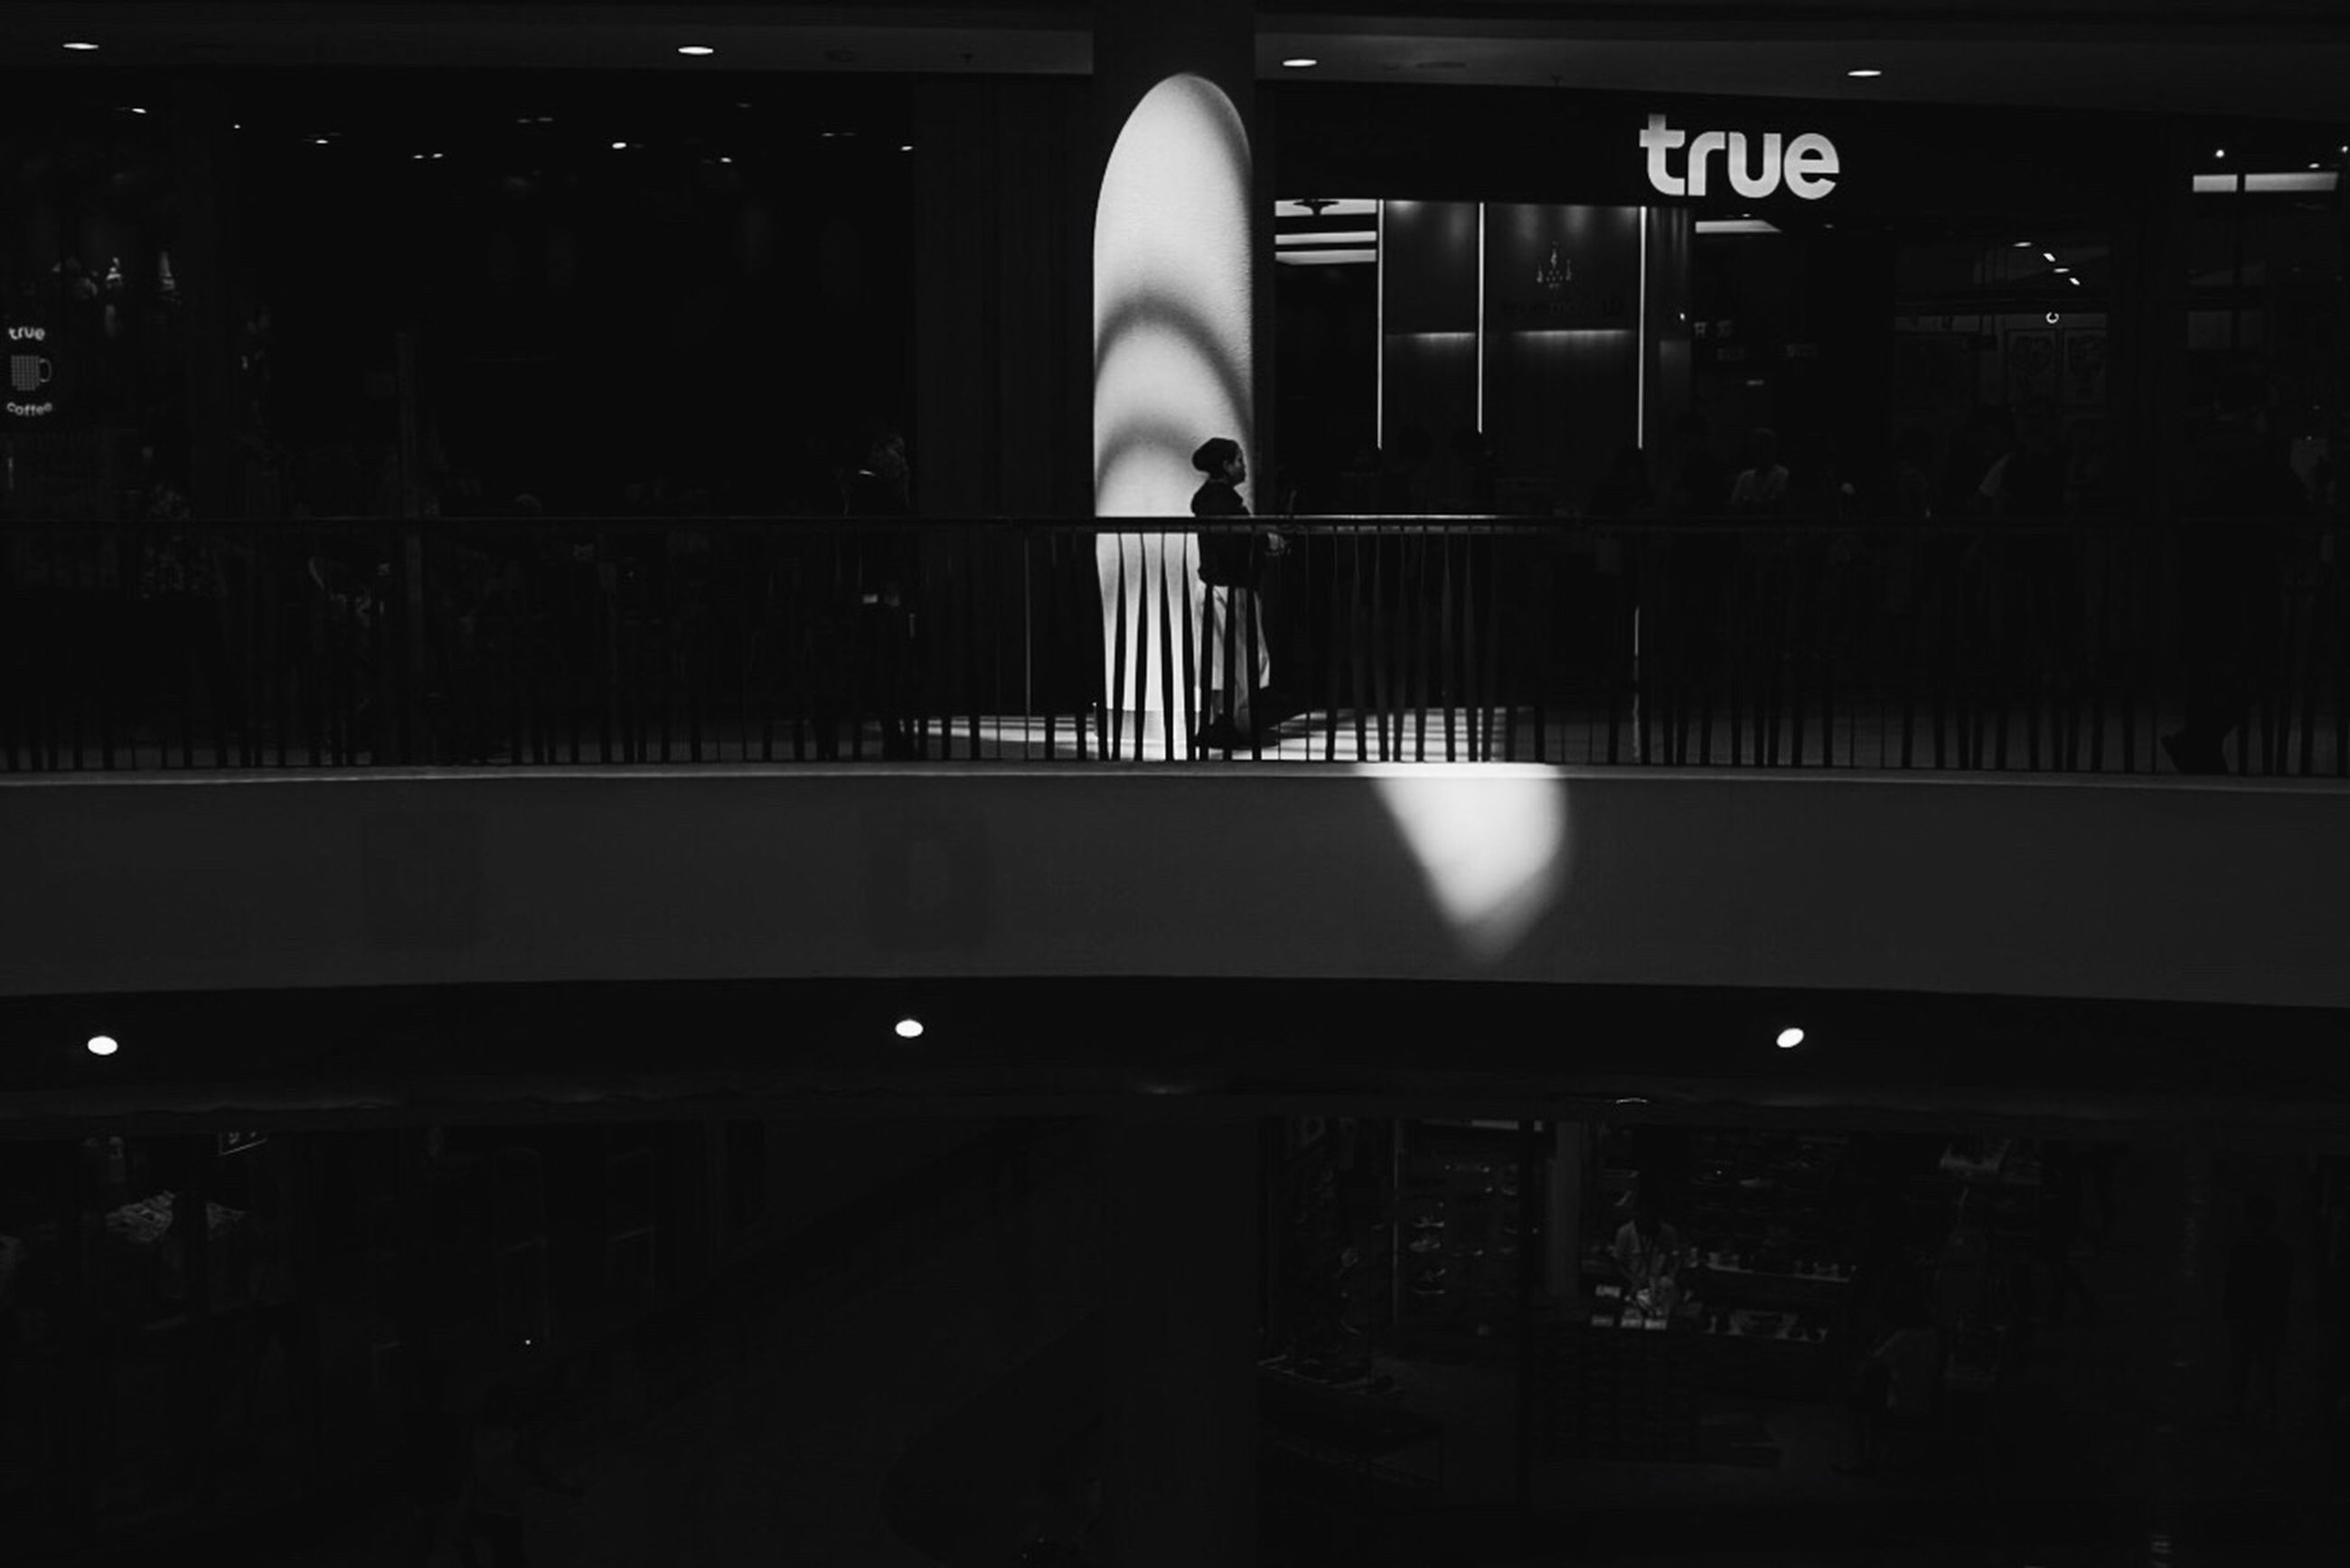 indoors, men, lifestyles, person, illuminated, leisure activity, rear view, standing, silhouette, communication, night, walking, public transportation, text, full length, unrecognizable person, waiting